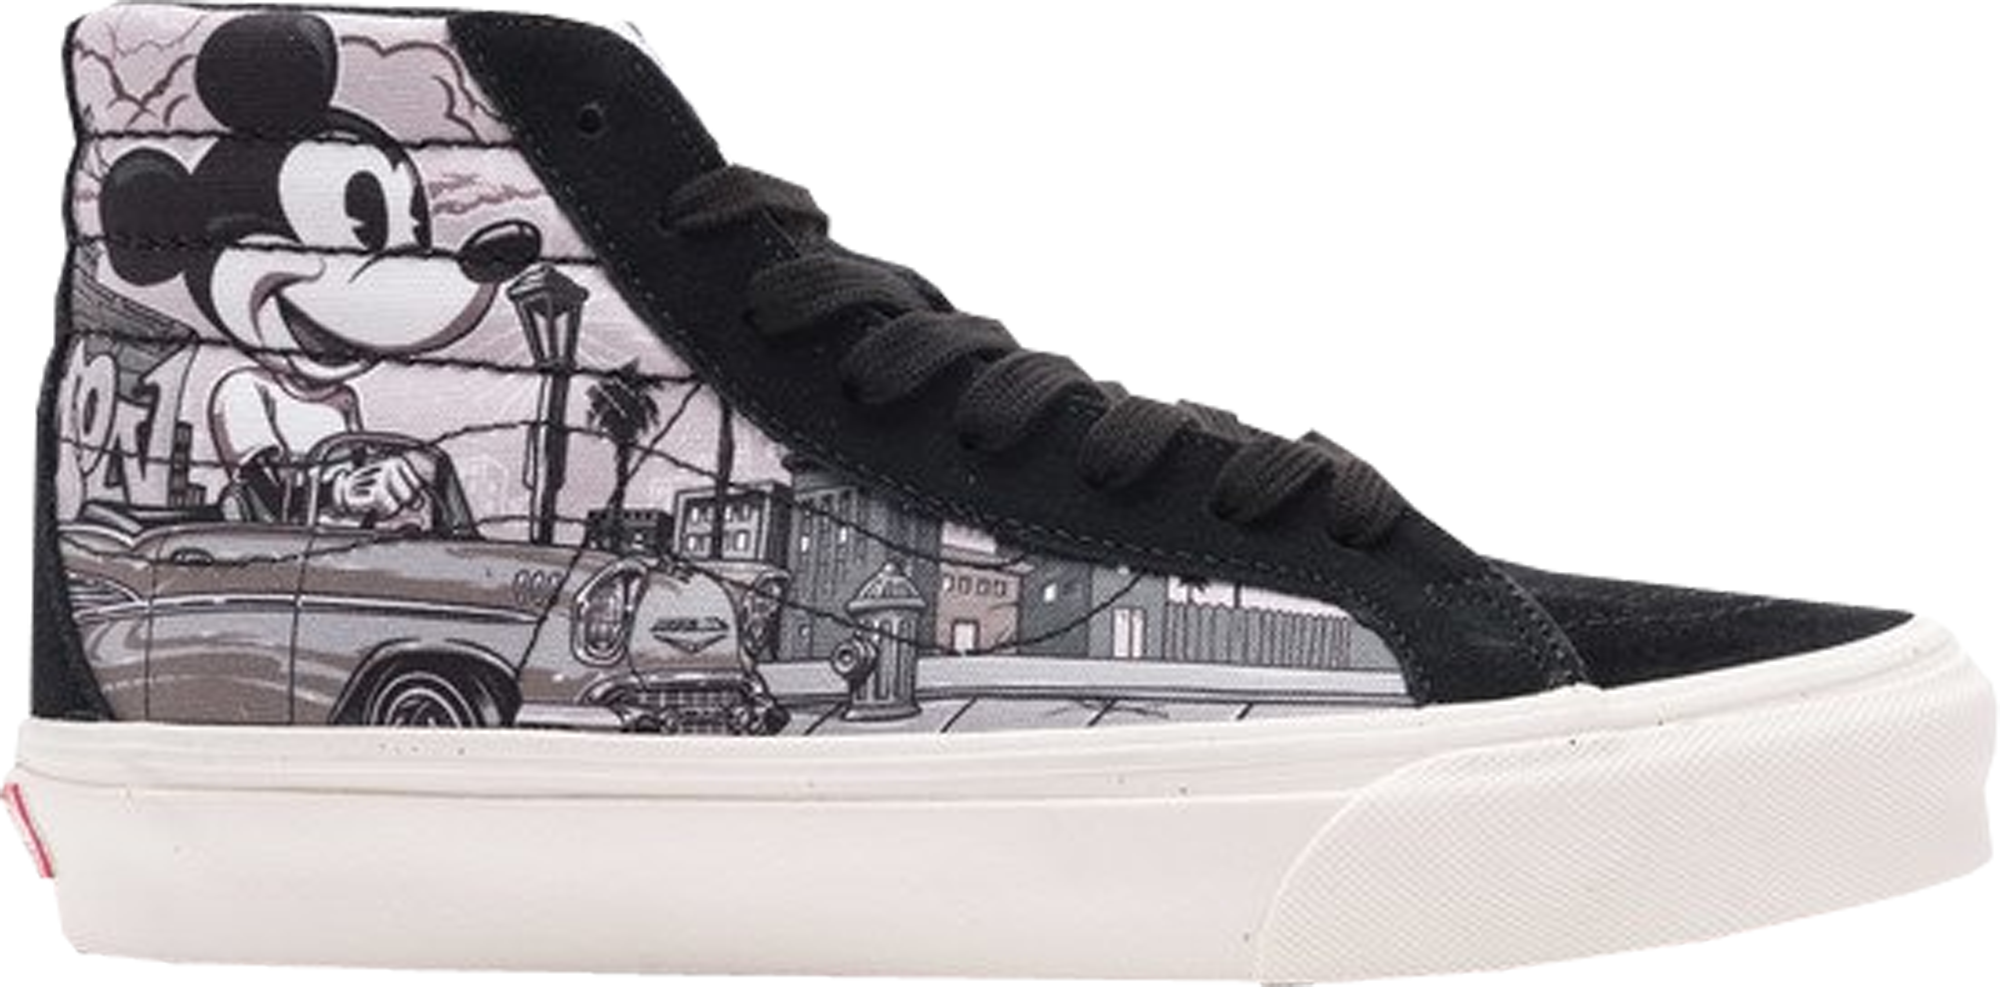 Vans Sk8Hi Disney x Mr. Cartoon Cartoon shoes, Vans